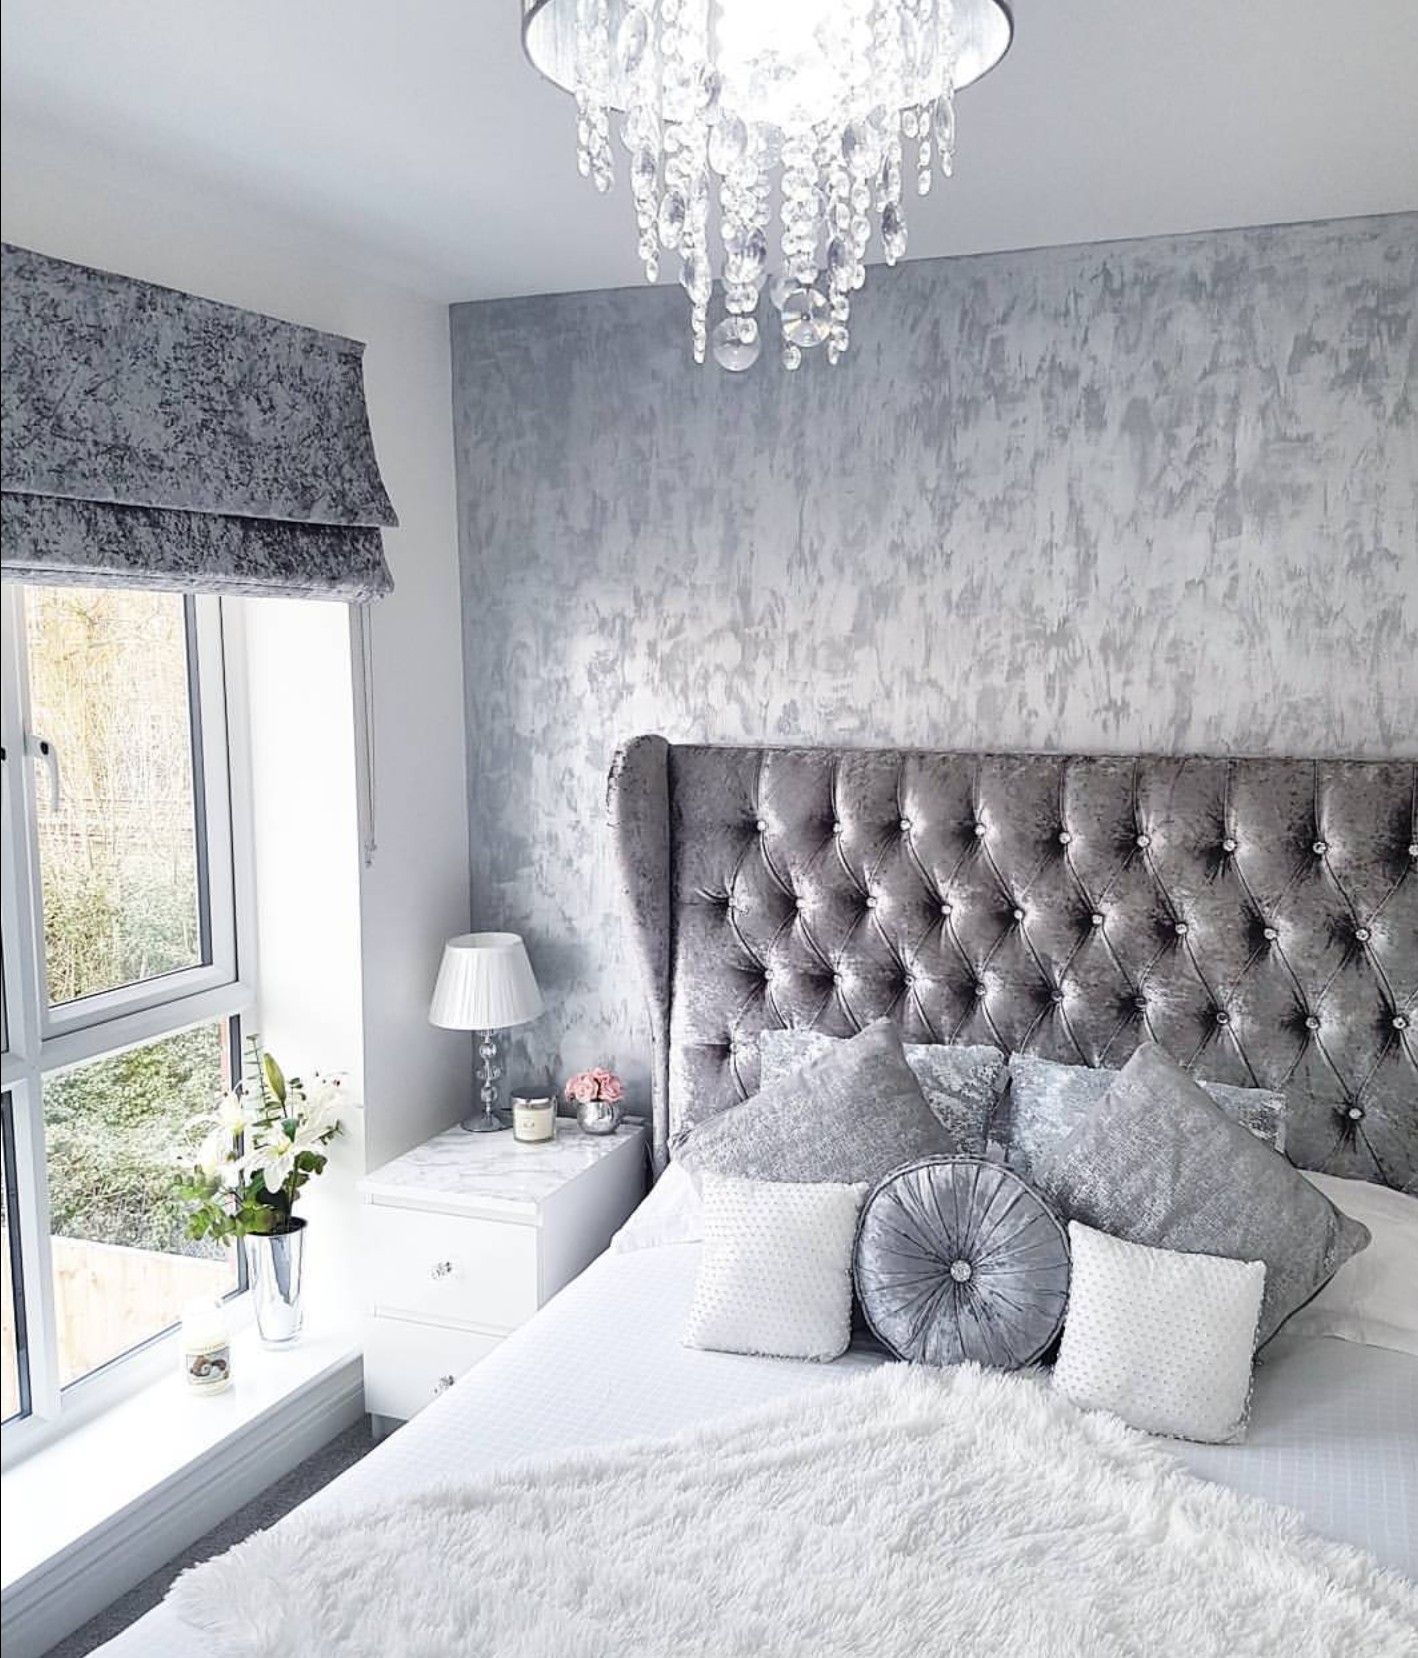 Grey Silver White Crushed Velvet Bedroom Modern Decor Inspo From Insta Glitterbedroom Silver Wallpaper Bedroom Modern Grey Bedroom Wallpaper Bedroom Home